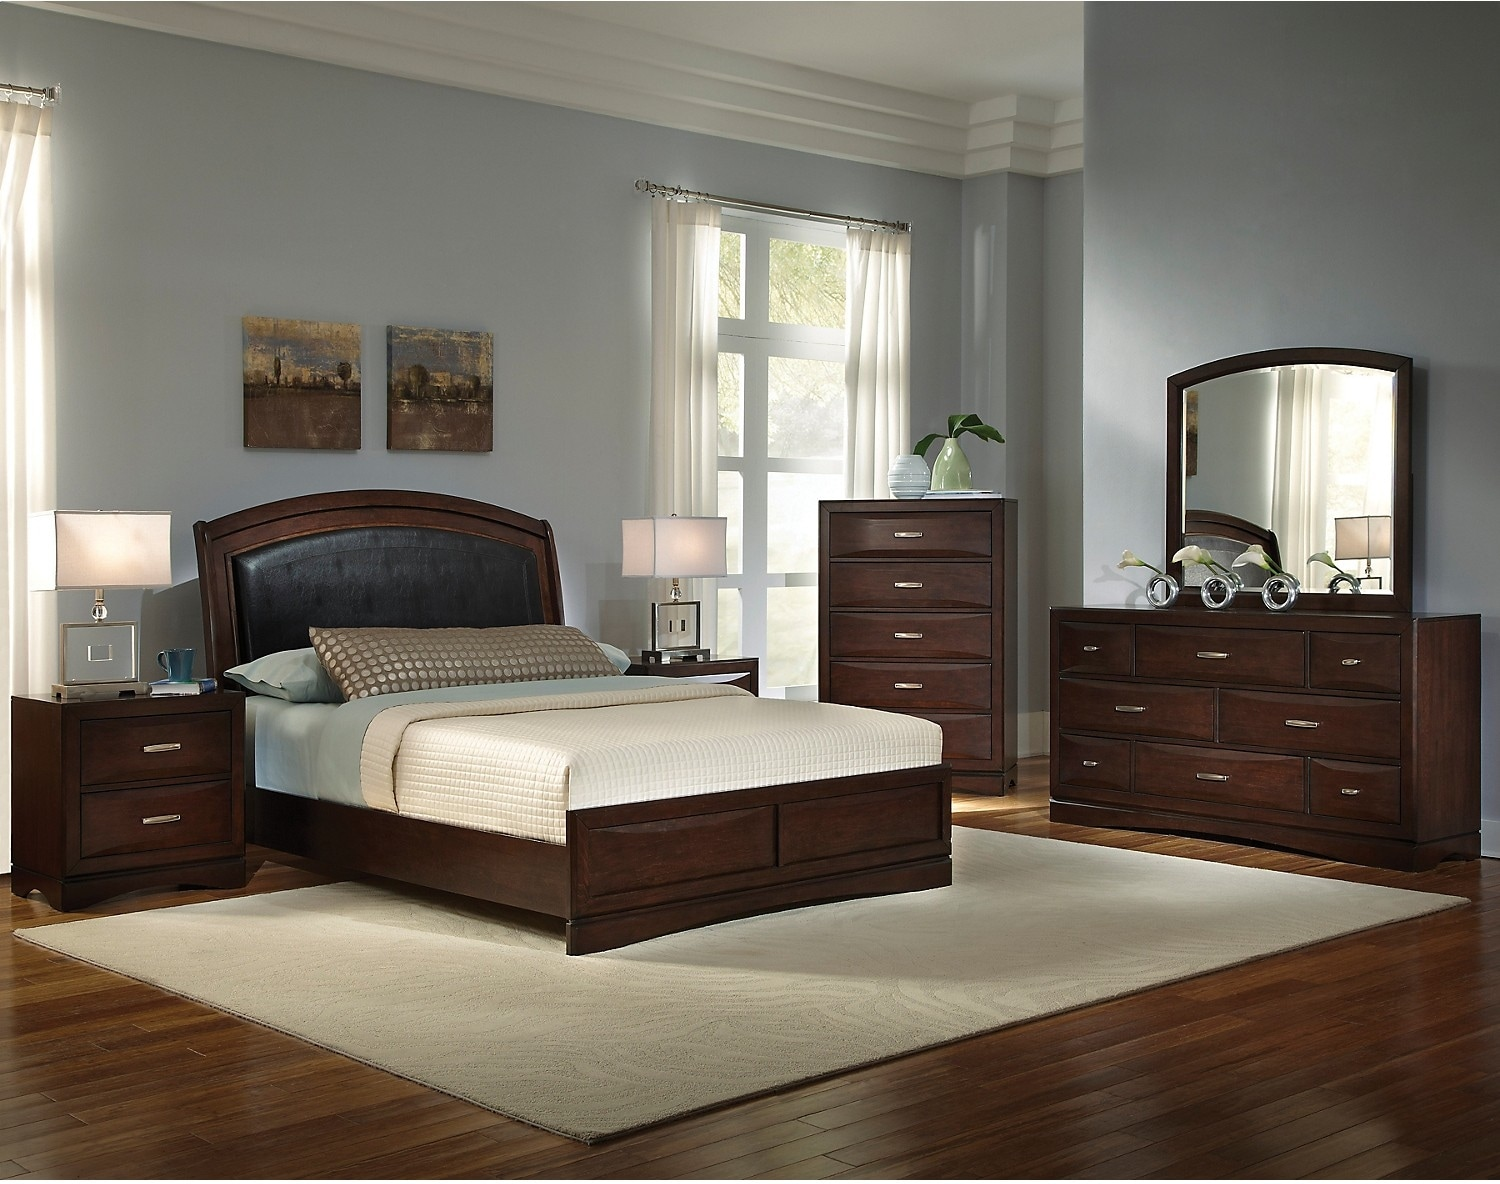 Beverly 8 piece queen bedroom set the brick for Bed and bedroom sets